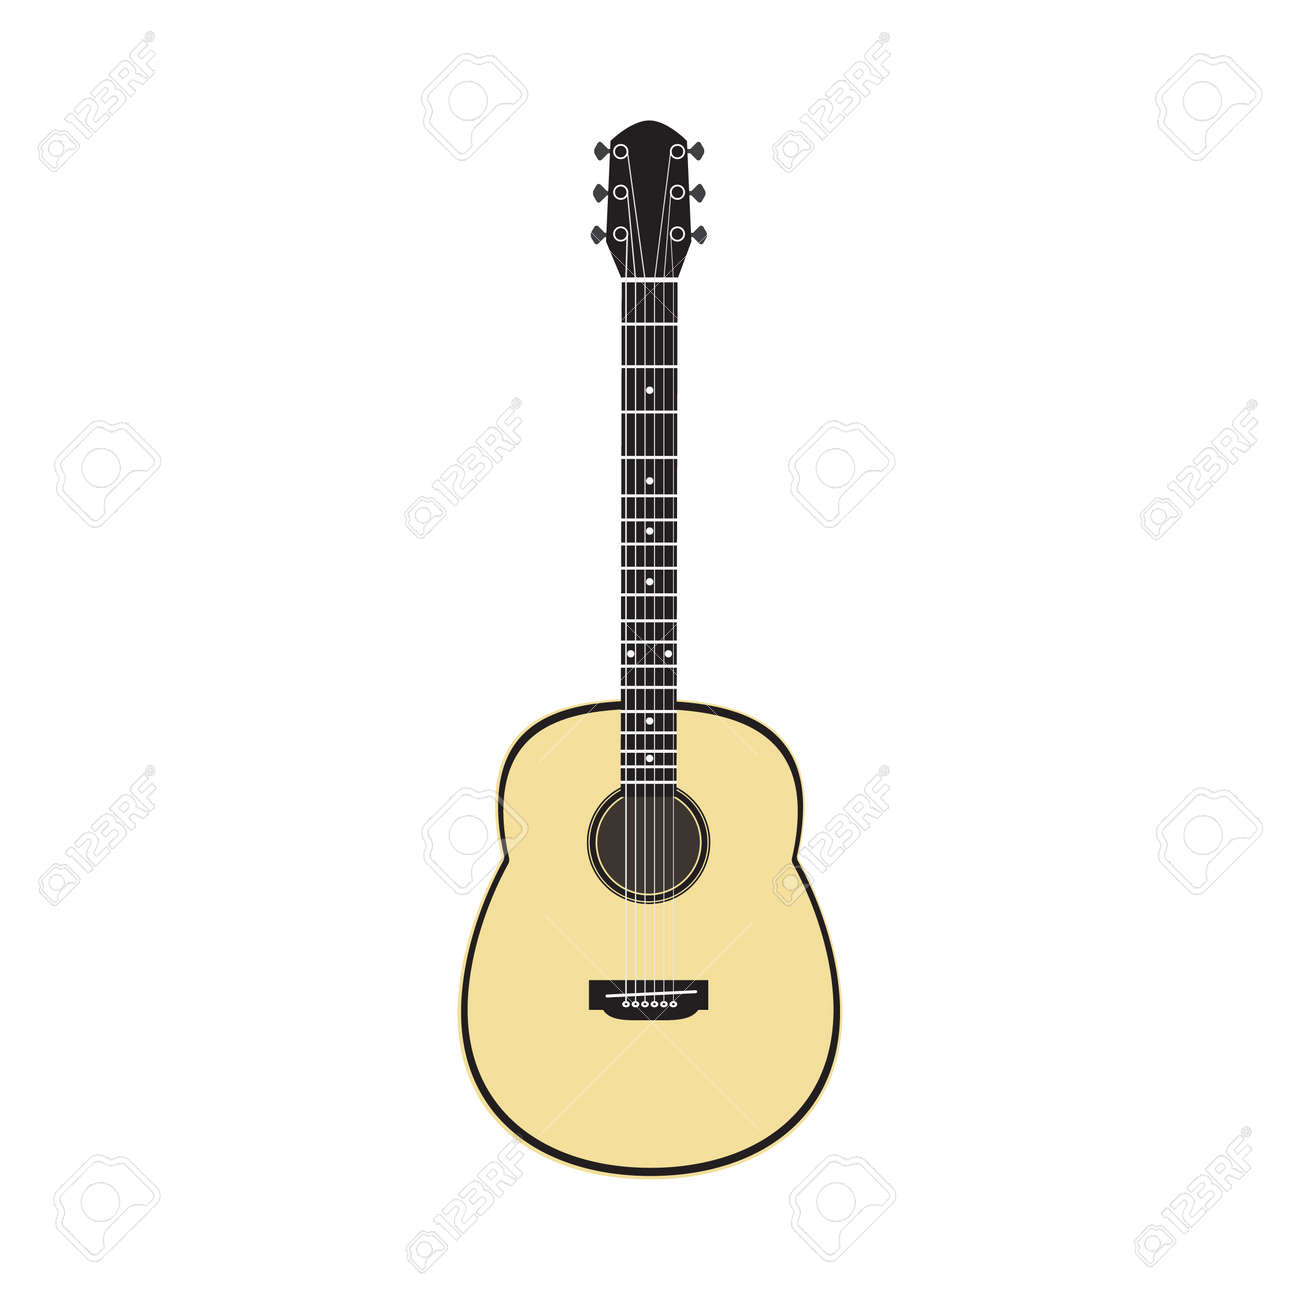 acoustic guitar vector royalty free cliparts vectors and stock rh 123rf com acoustic guitar vector silhouette acoustic guitar vector art